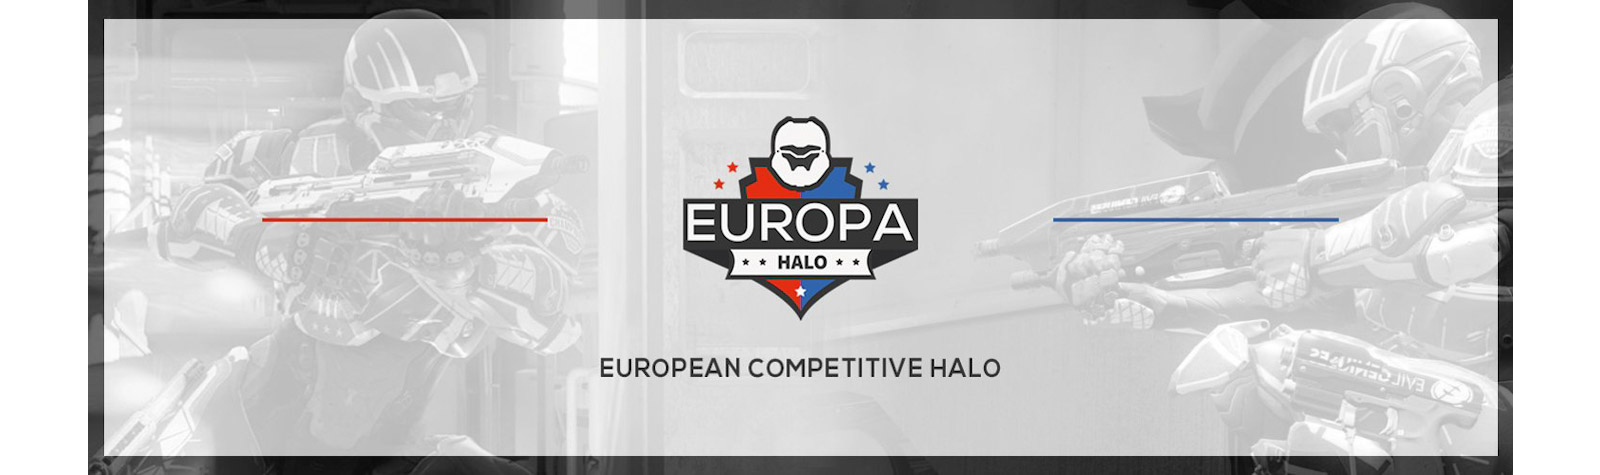 Europa Halo Double Down #2 Results